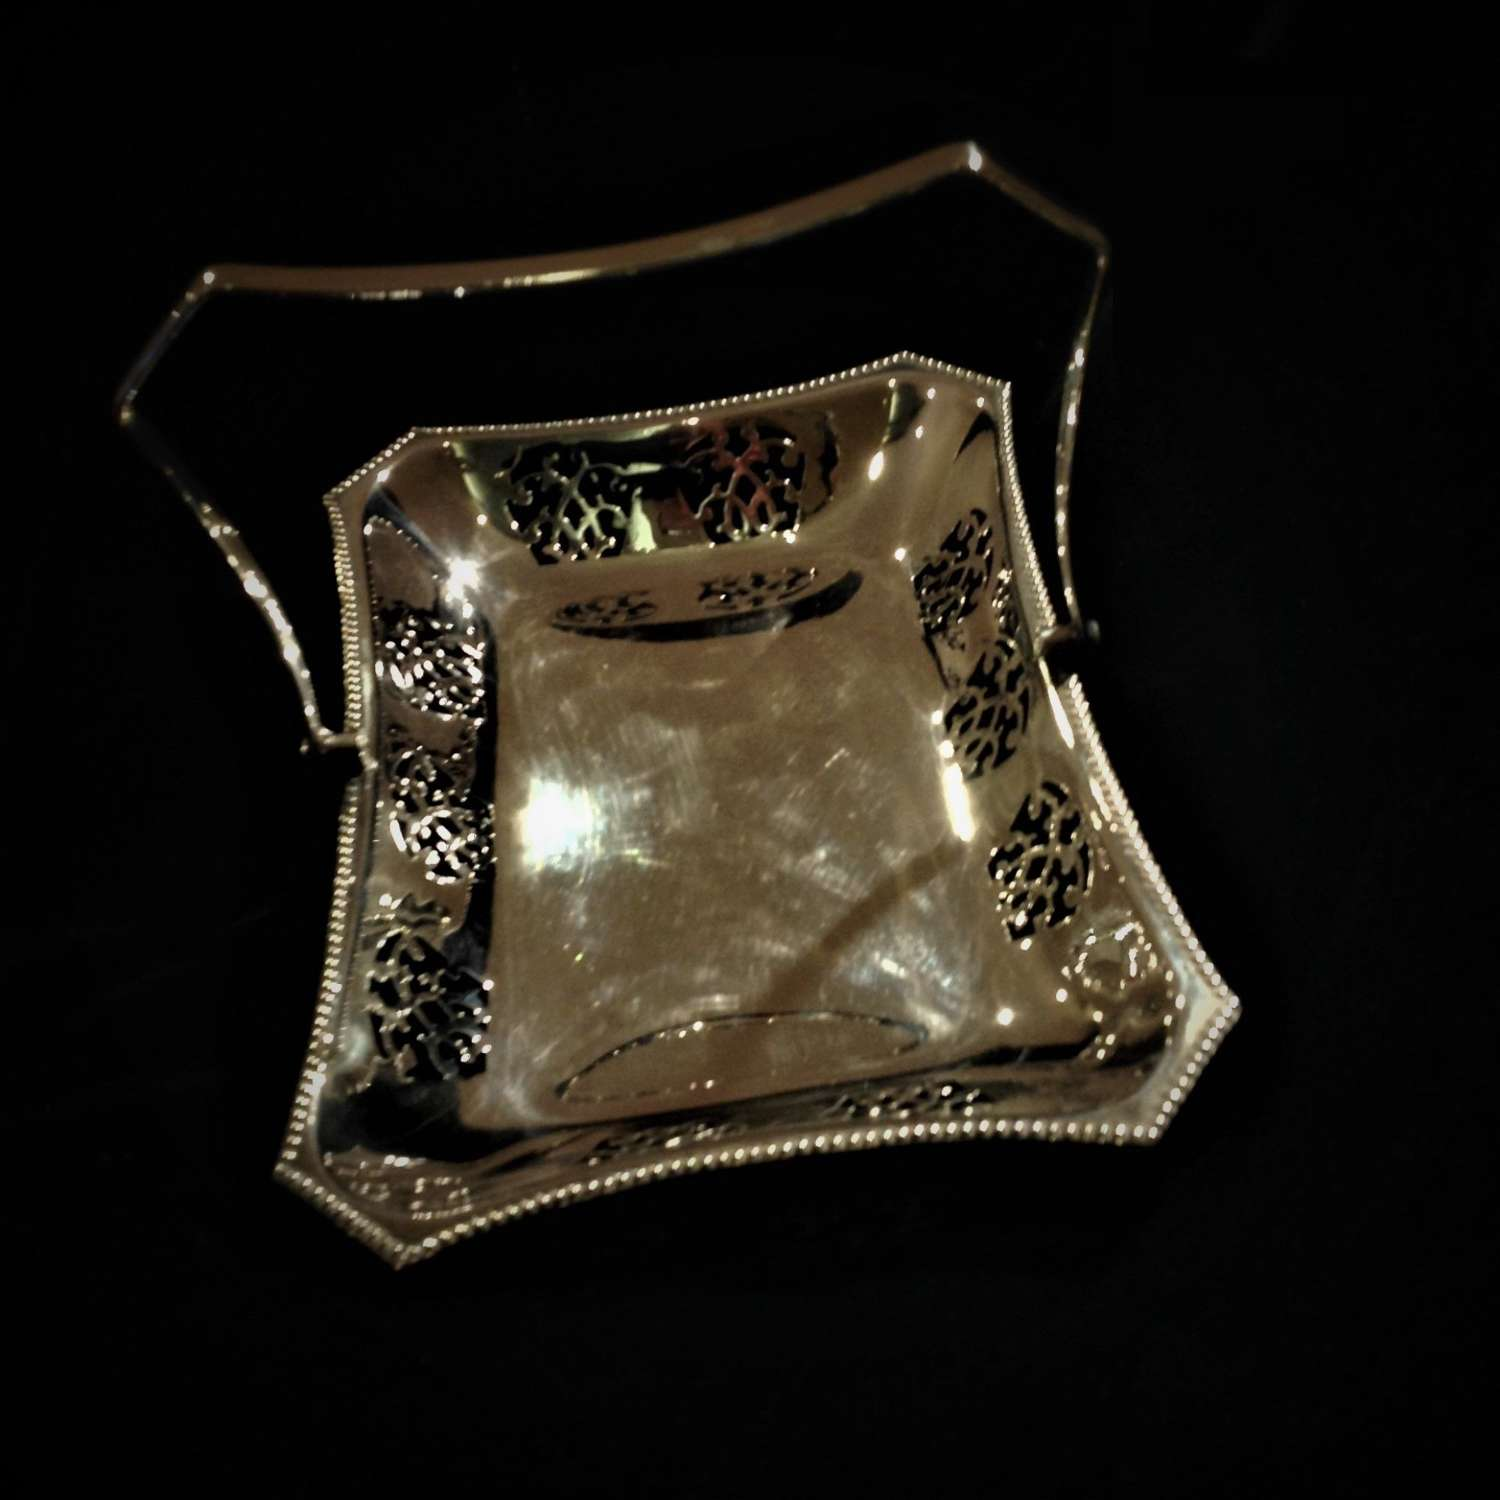 Decorative silver plated swing-handled basket